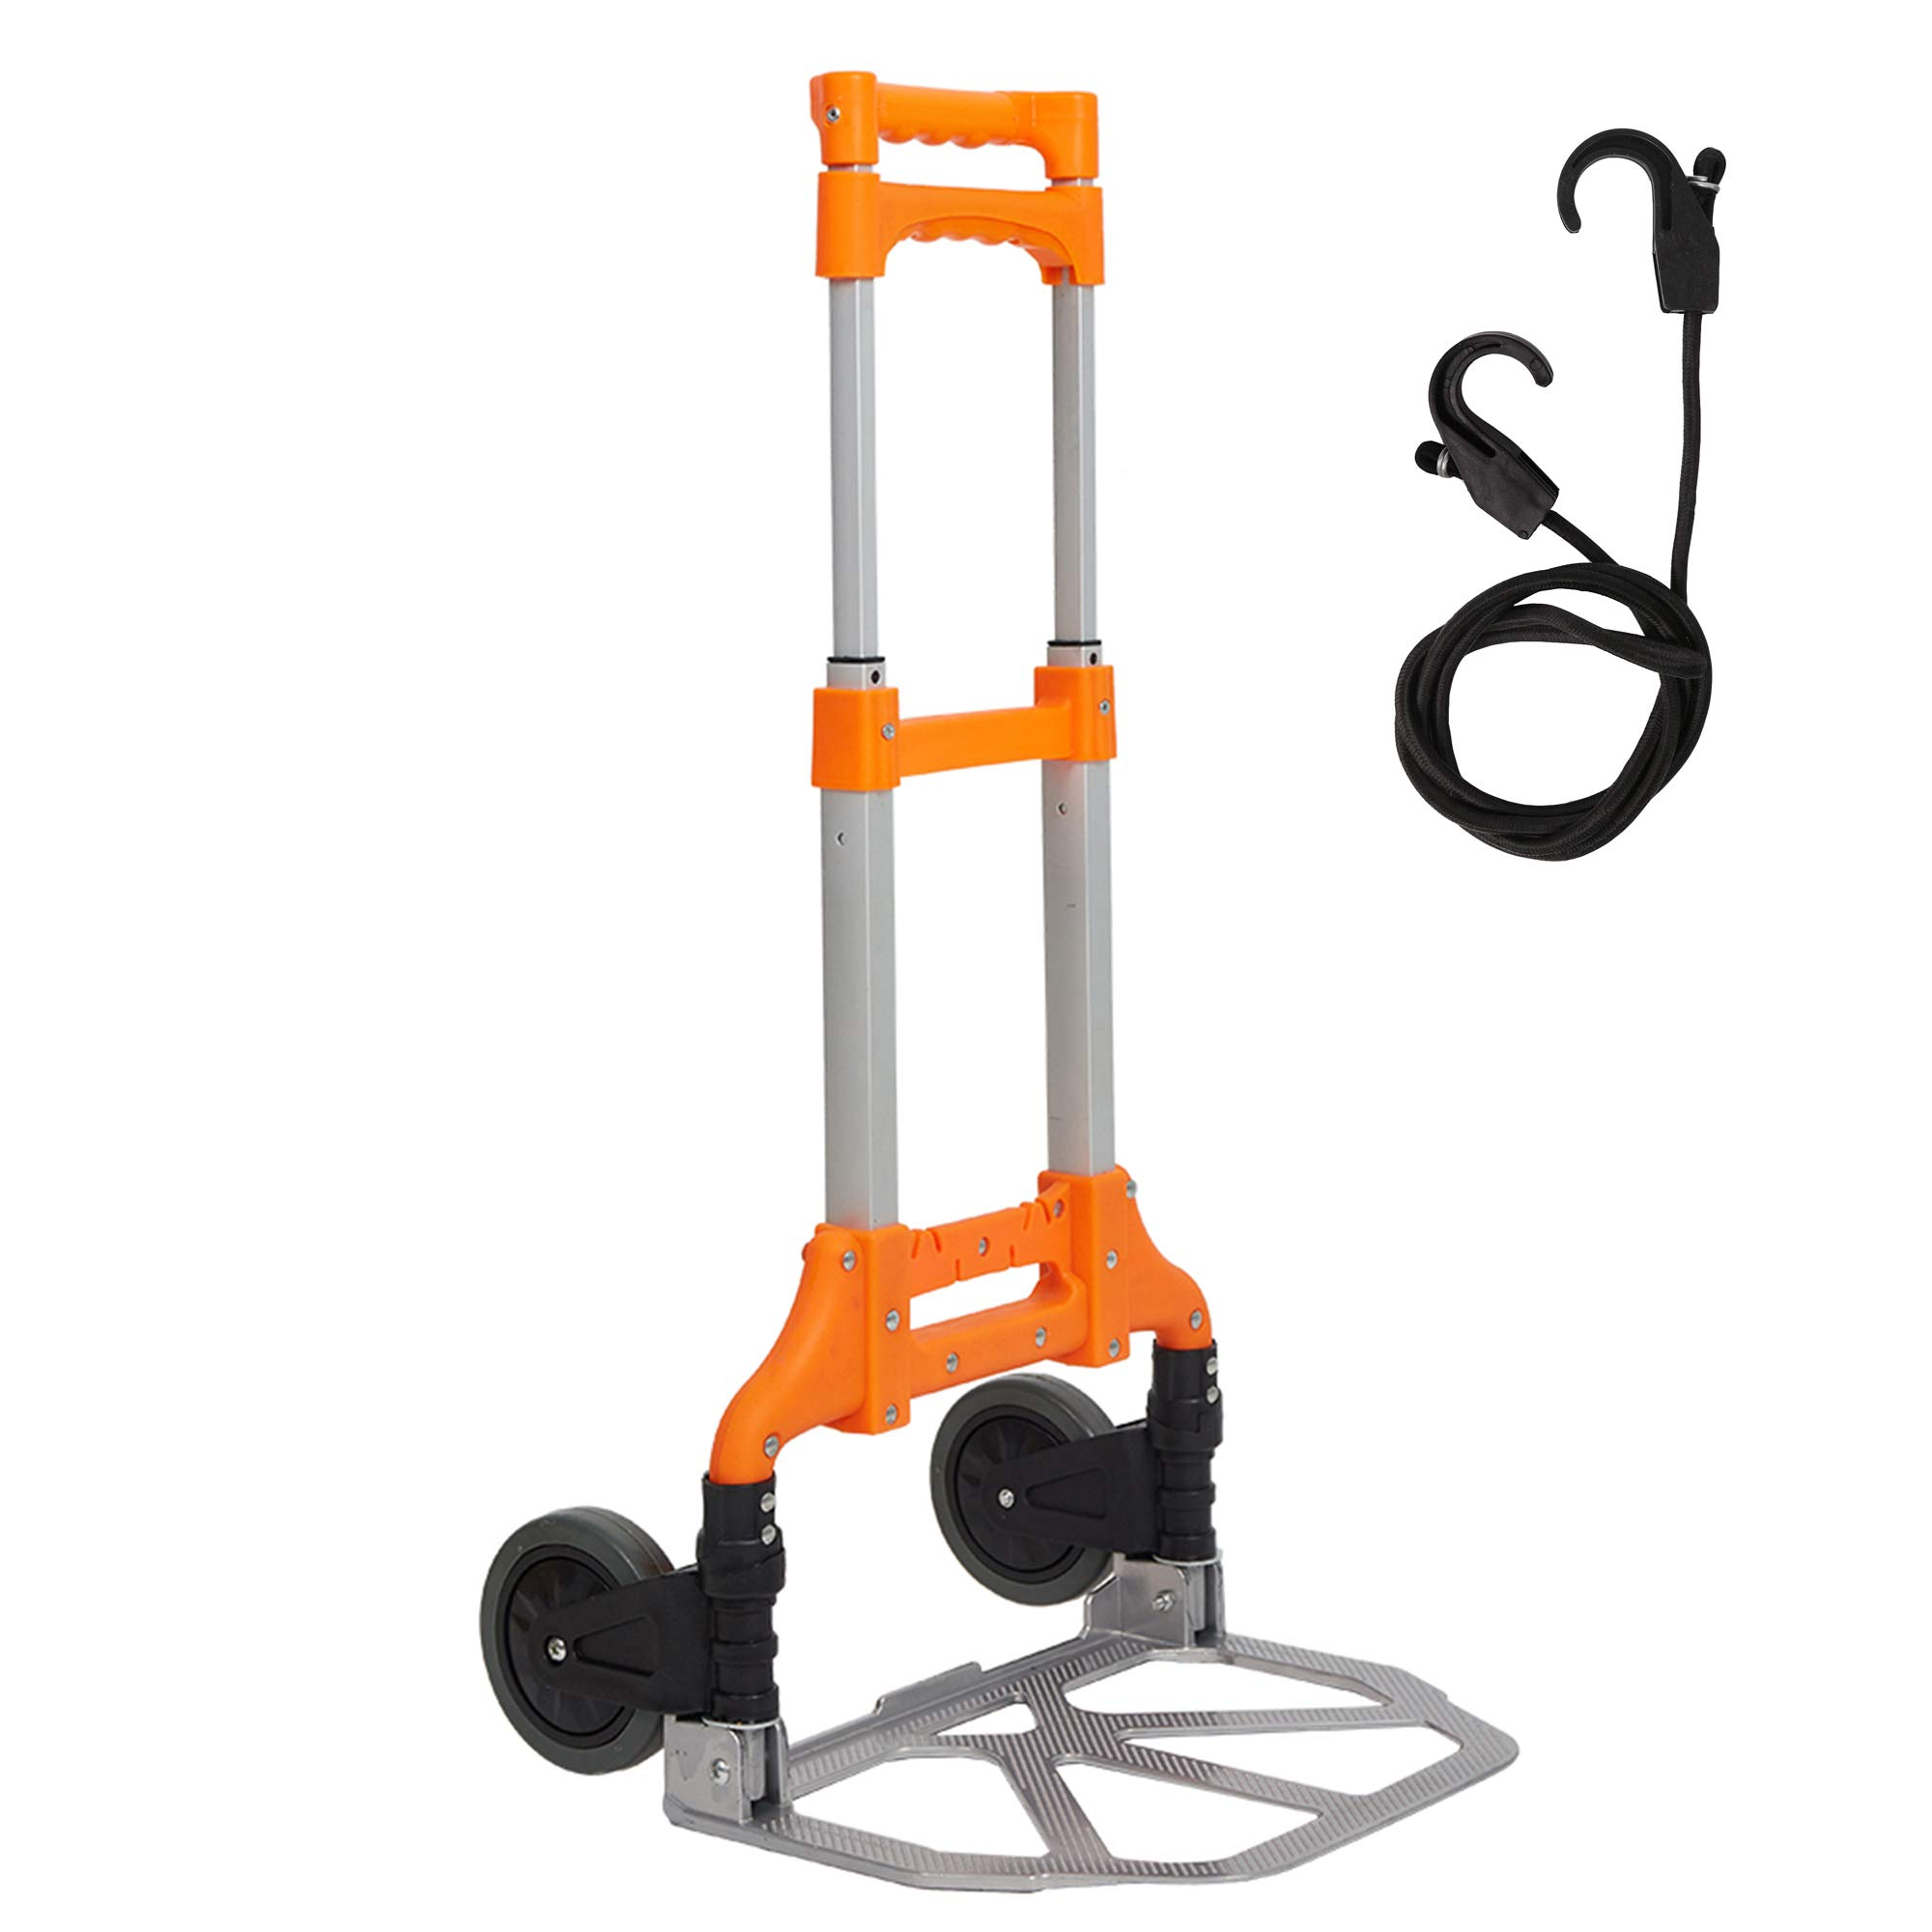 Lucky Tree Folding Hand Truck Aluminium Portable Dolly Cart with Wheels for Office Travel Home Use 170lbs Capacity